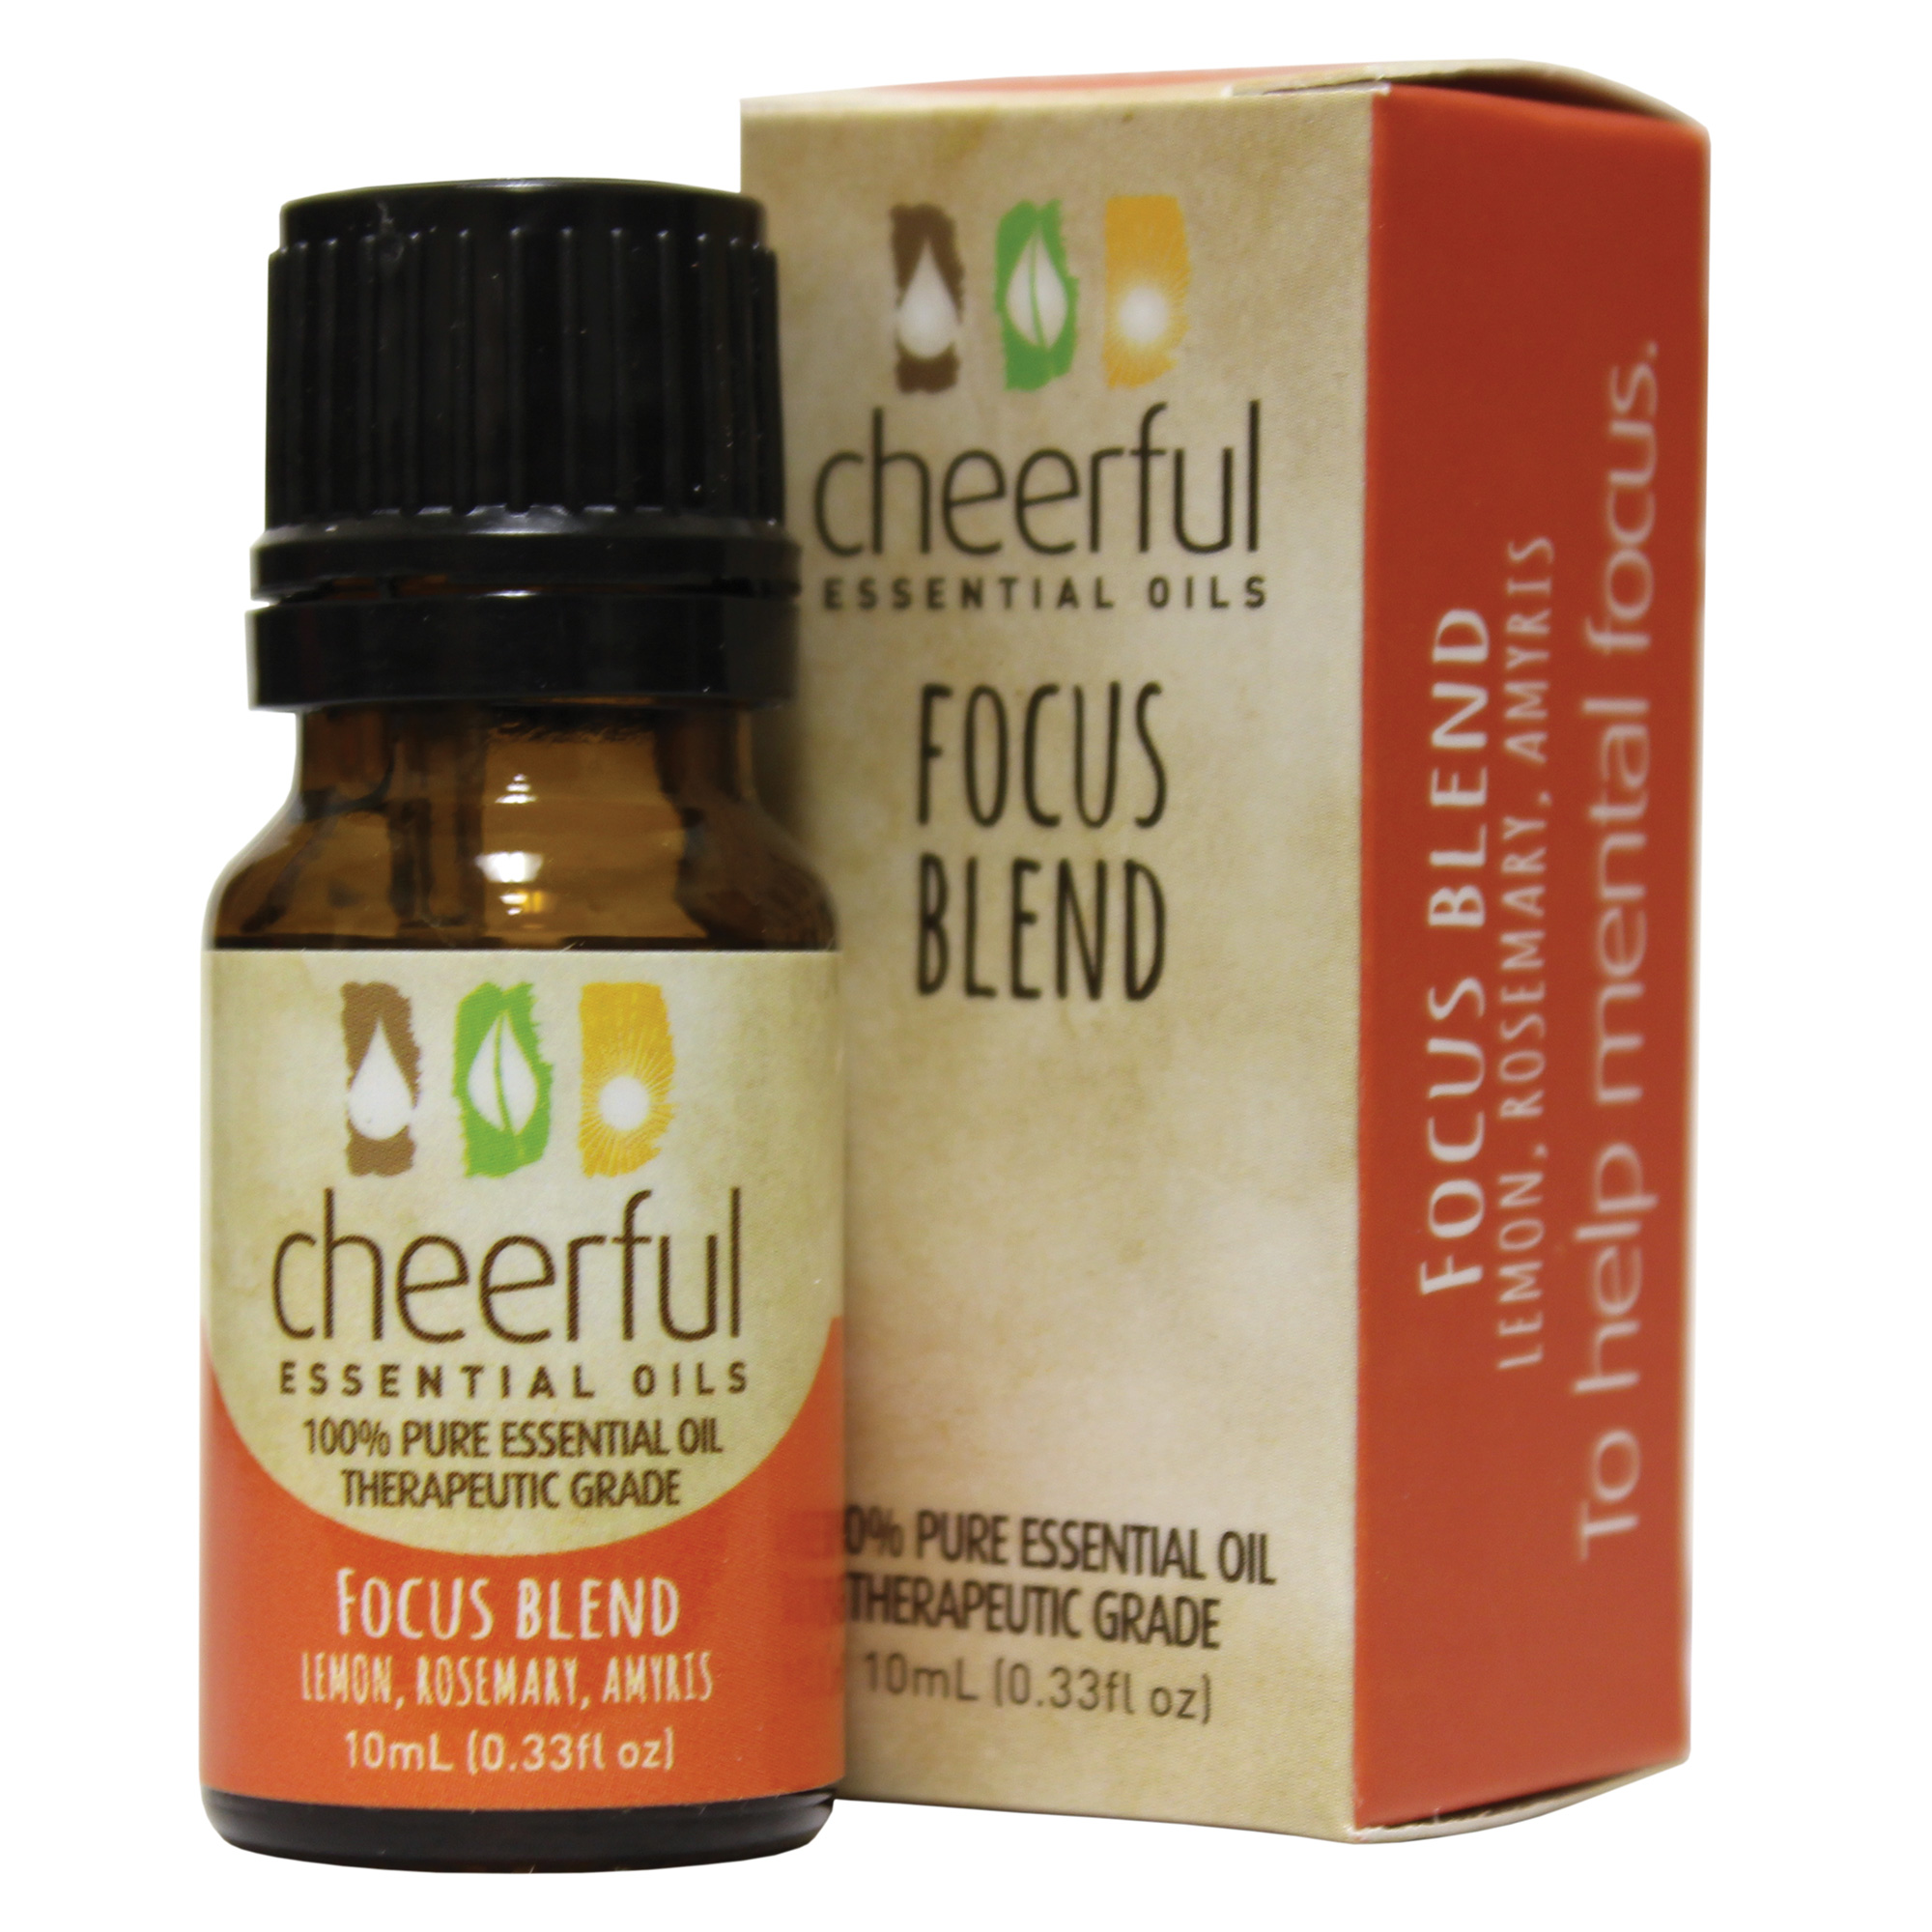 FOCUS BLEND ESSENTIAL OIL 10 ML UPC# 674623018232